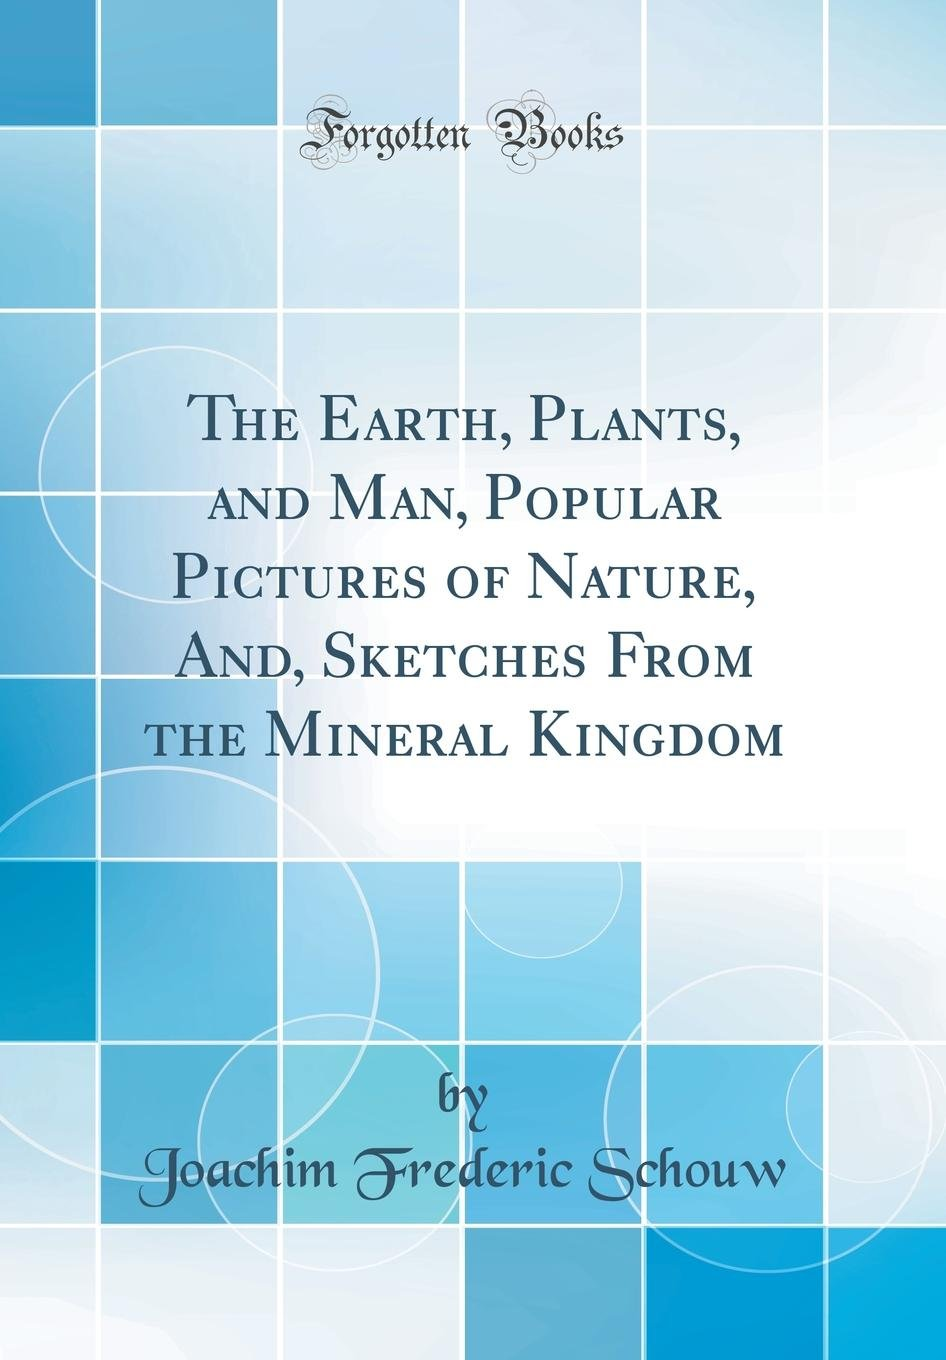 The Earth, Plants, and Man, Popular Pictures of Nature, And, Sketches From the Mineral Kingdom (Classic Reprint) pdf